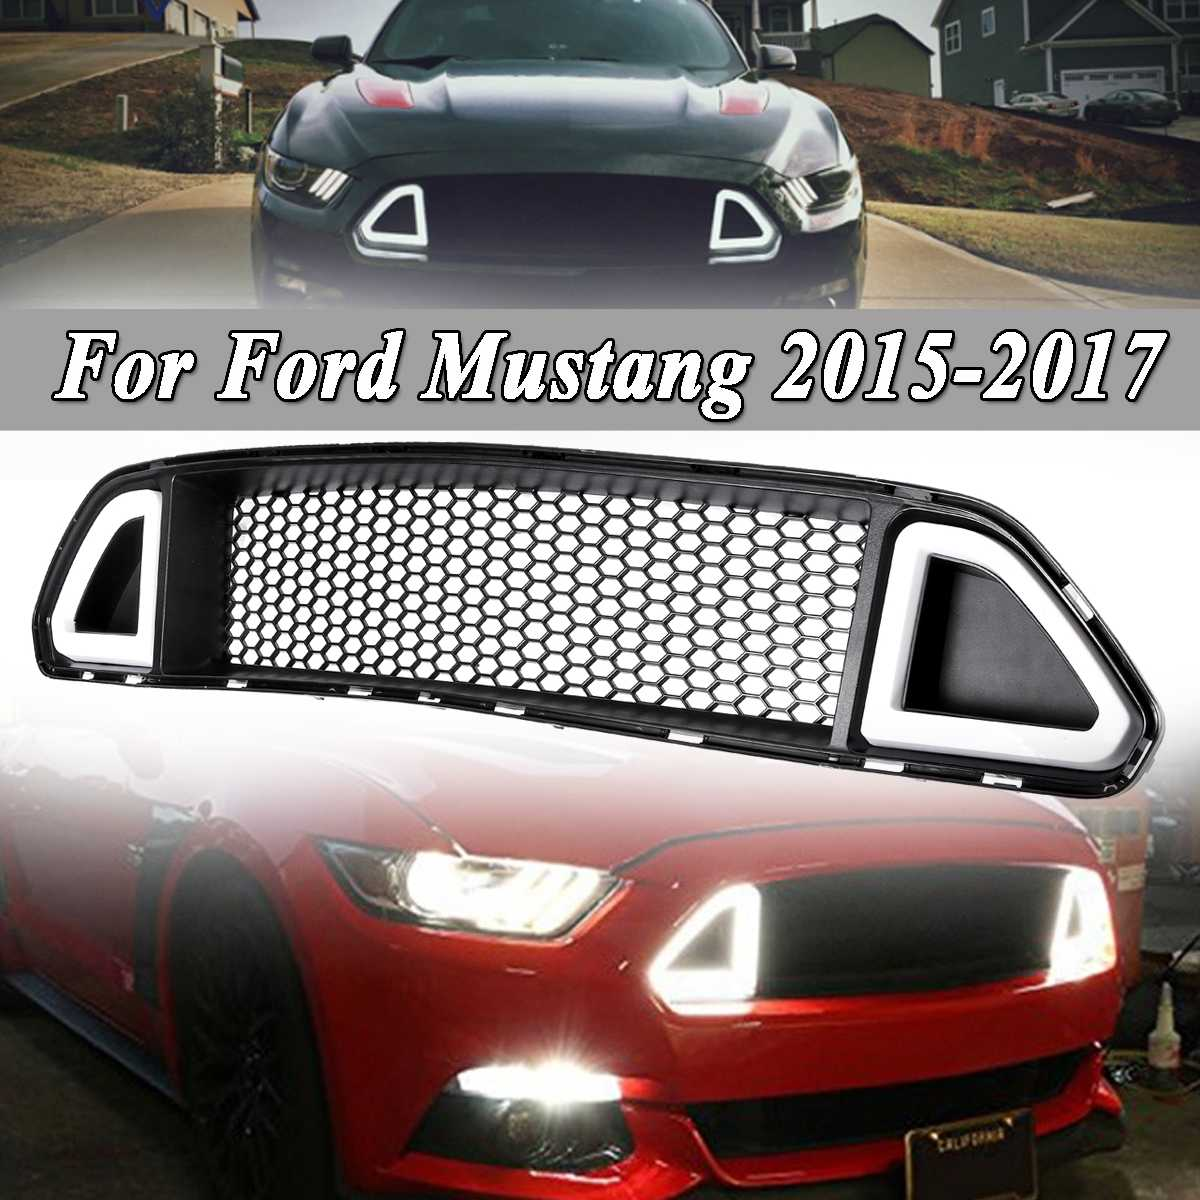 New Car Racing Grille Grill For Ford For Mustang 2015 2016 2017 Black Radiator Mesh Front Hood Bumper Modify DRL LED LightNew Car Racing Grille Grill For Ford For Mustang 2015 2016 2017 Black Radiator Mesh Front Hood Bumper Modify DRL LED Light